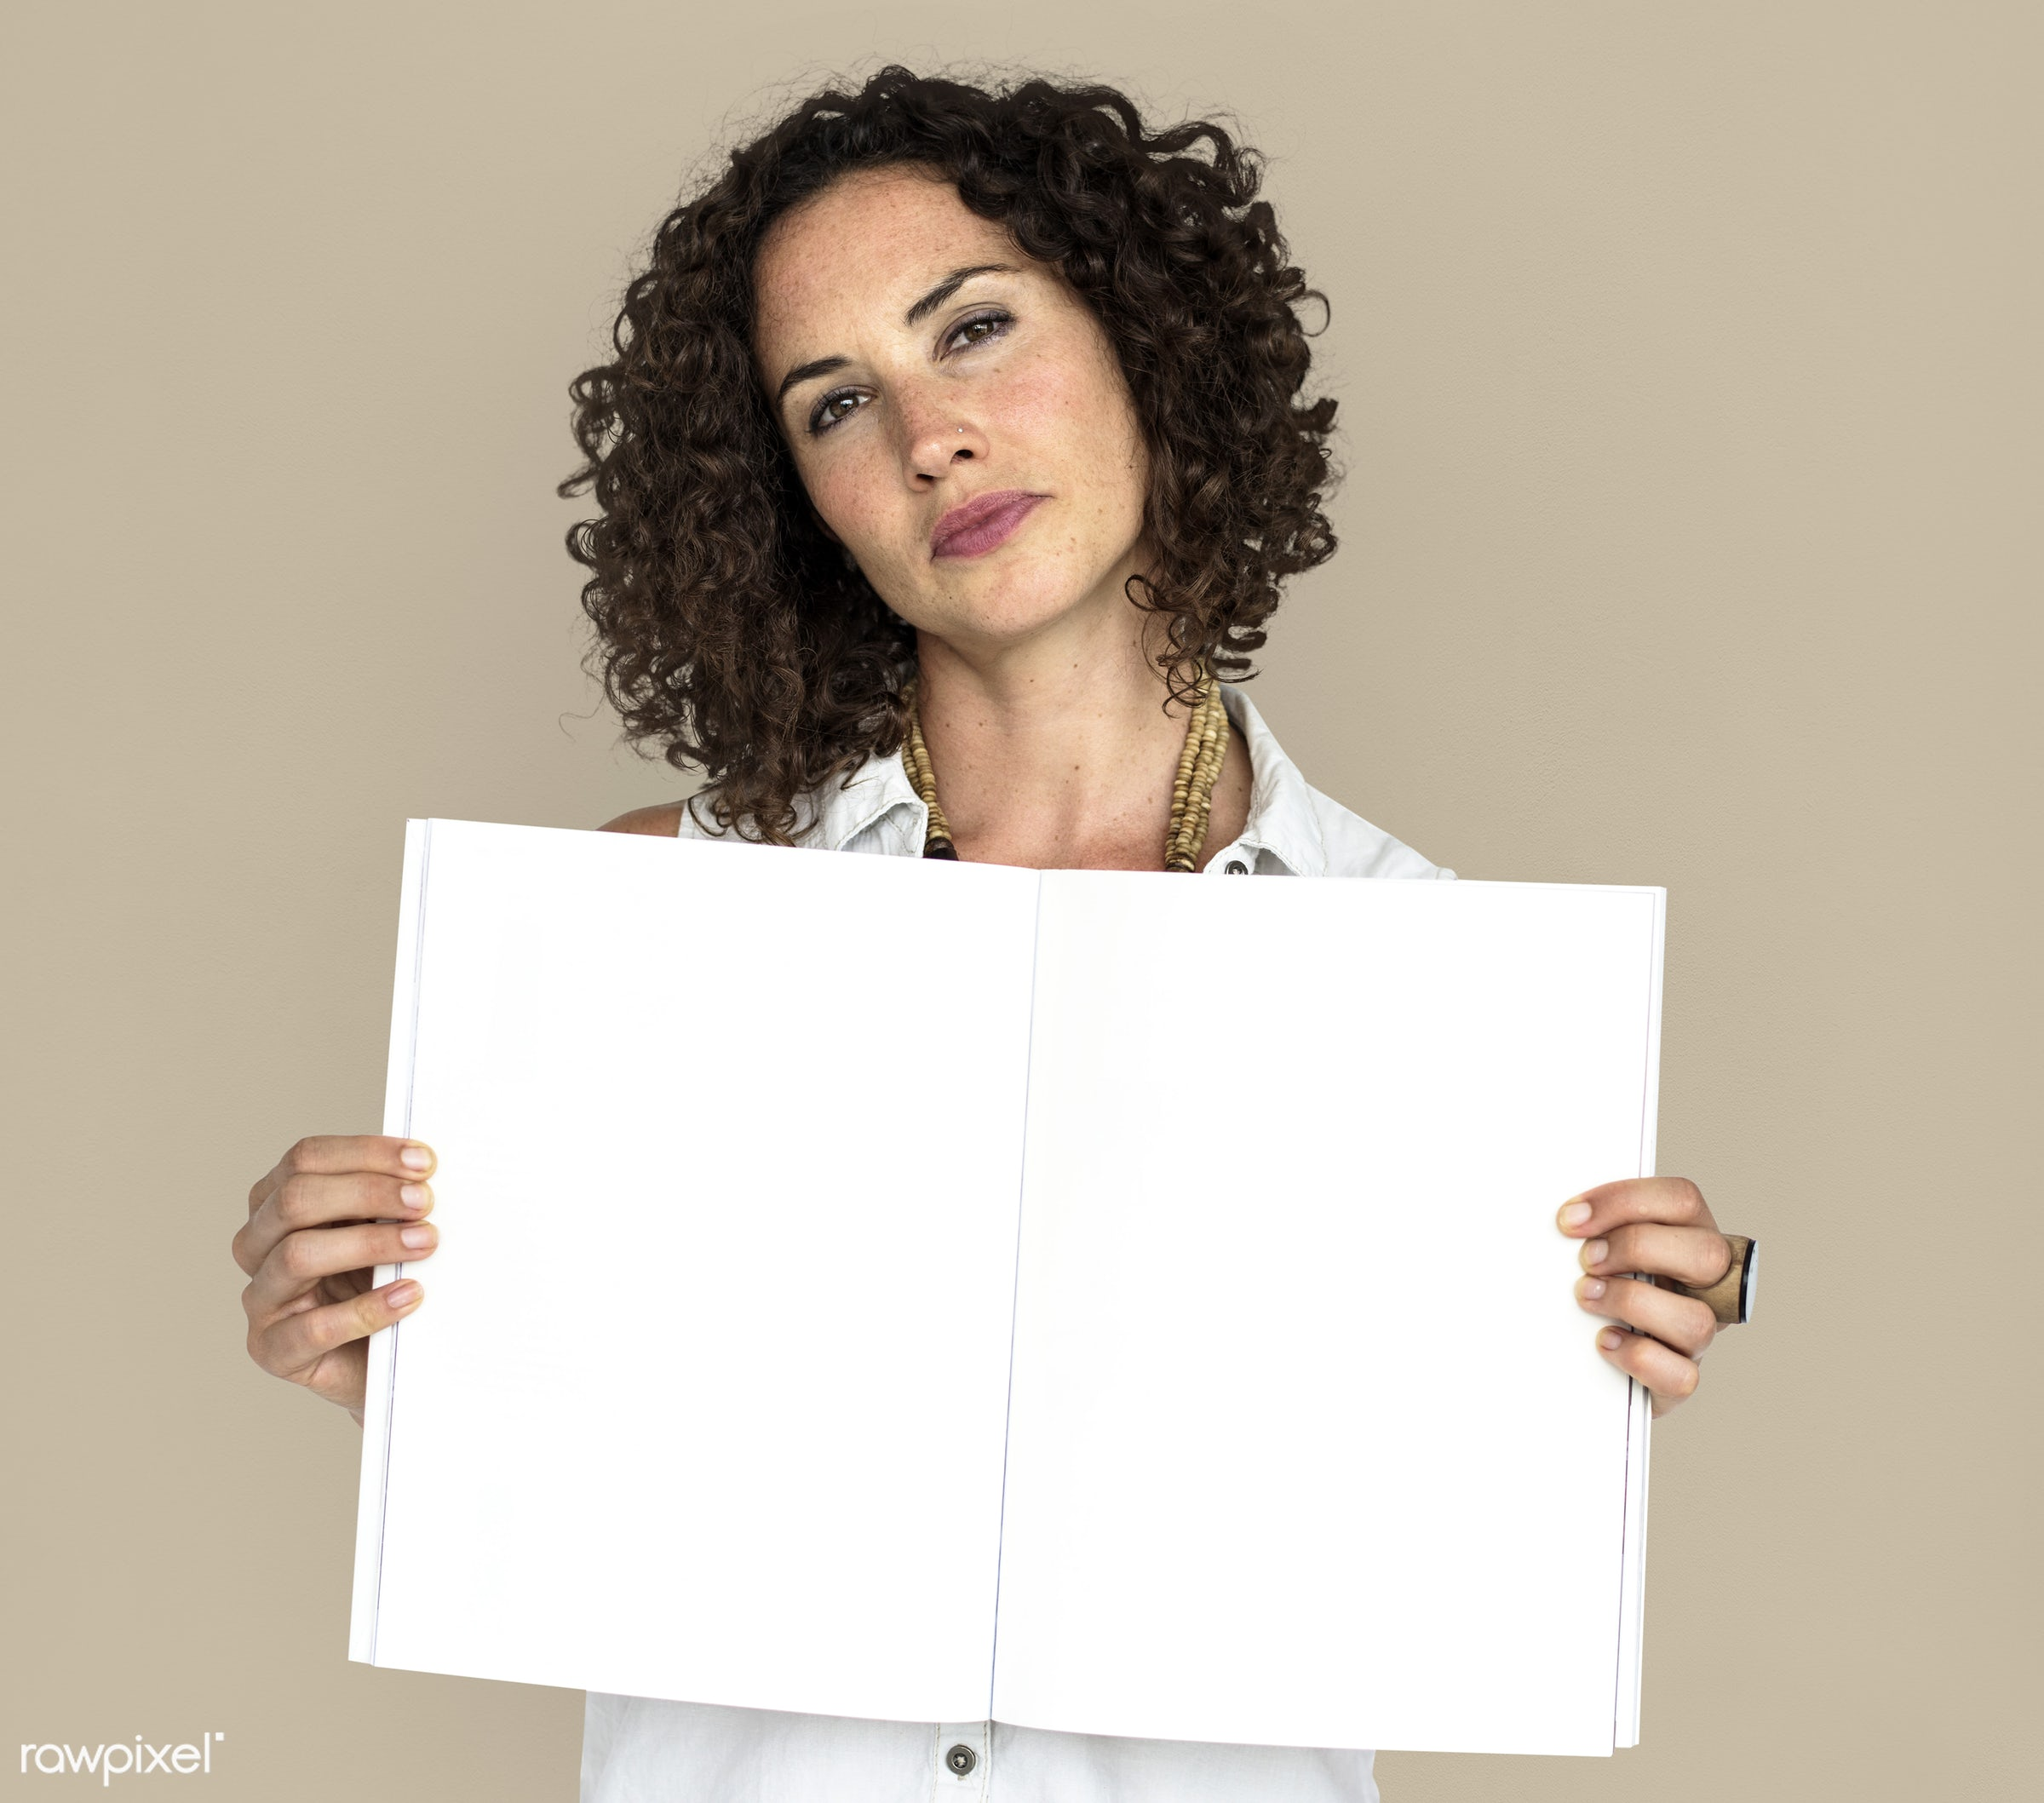 expression, studio, person, open notebook, object, people, positivity, caucasian, girl, solo, woman, showing, holding...